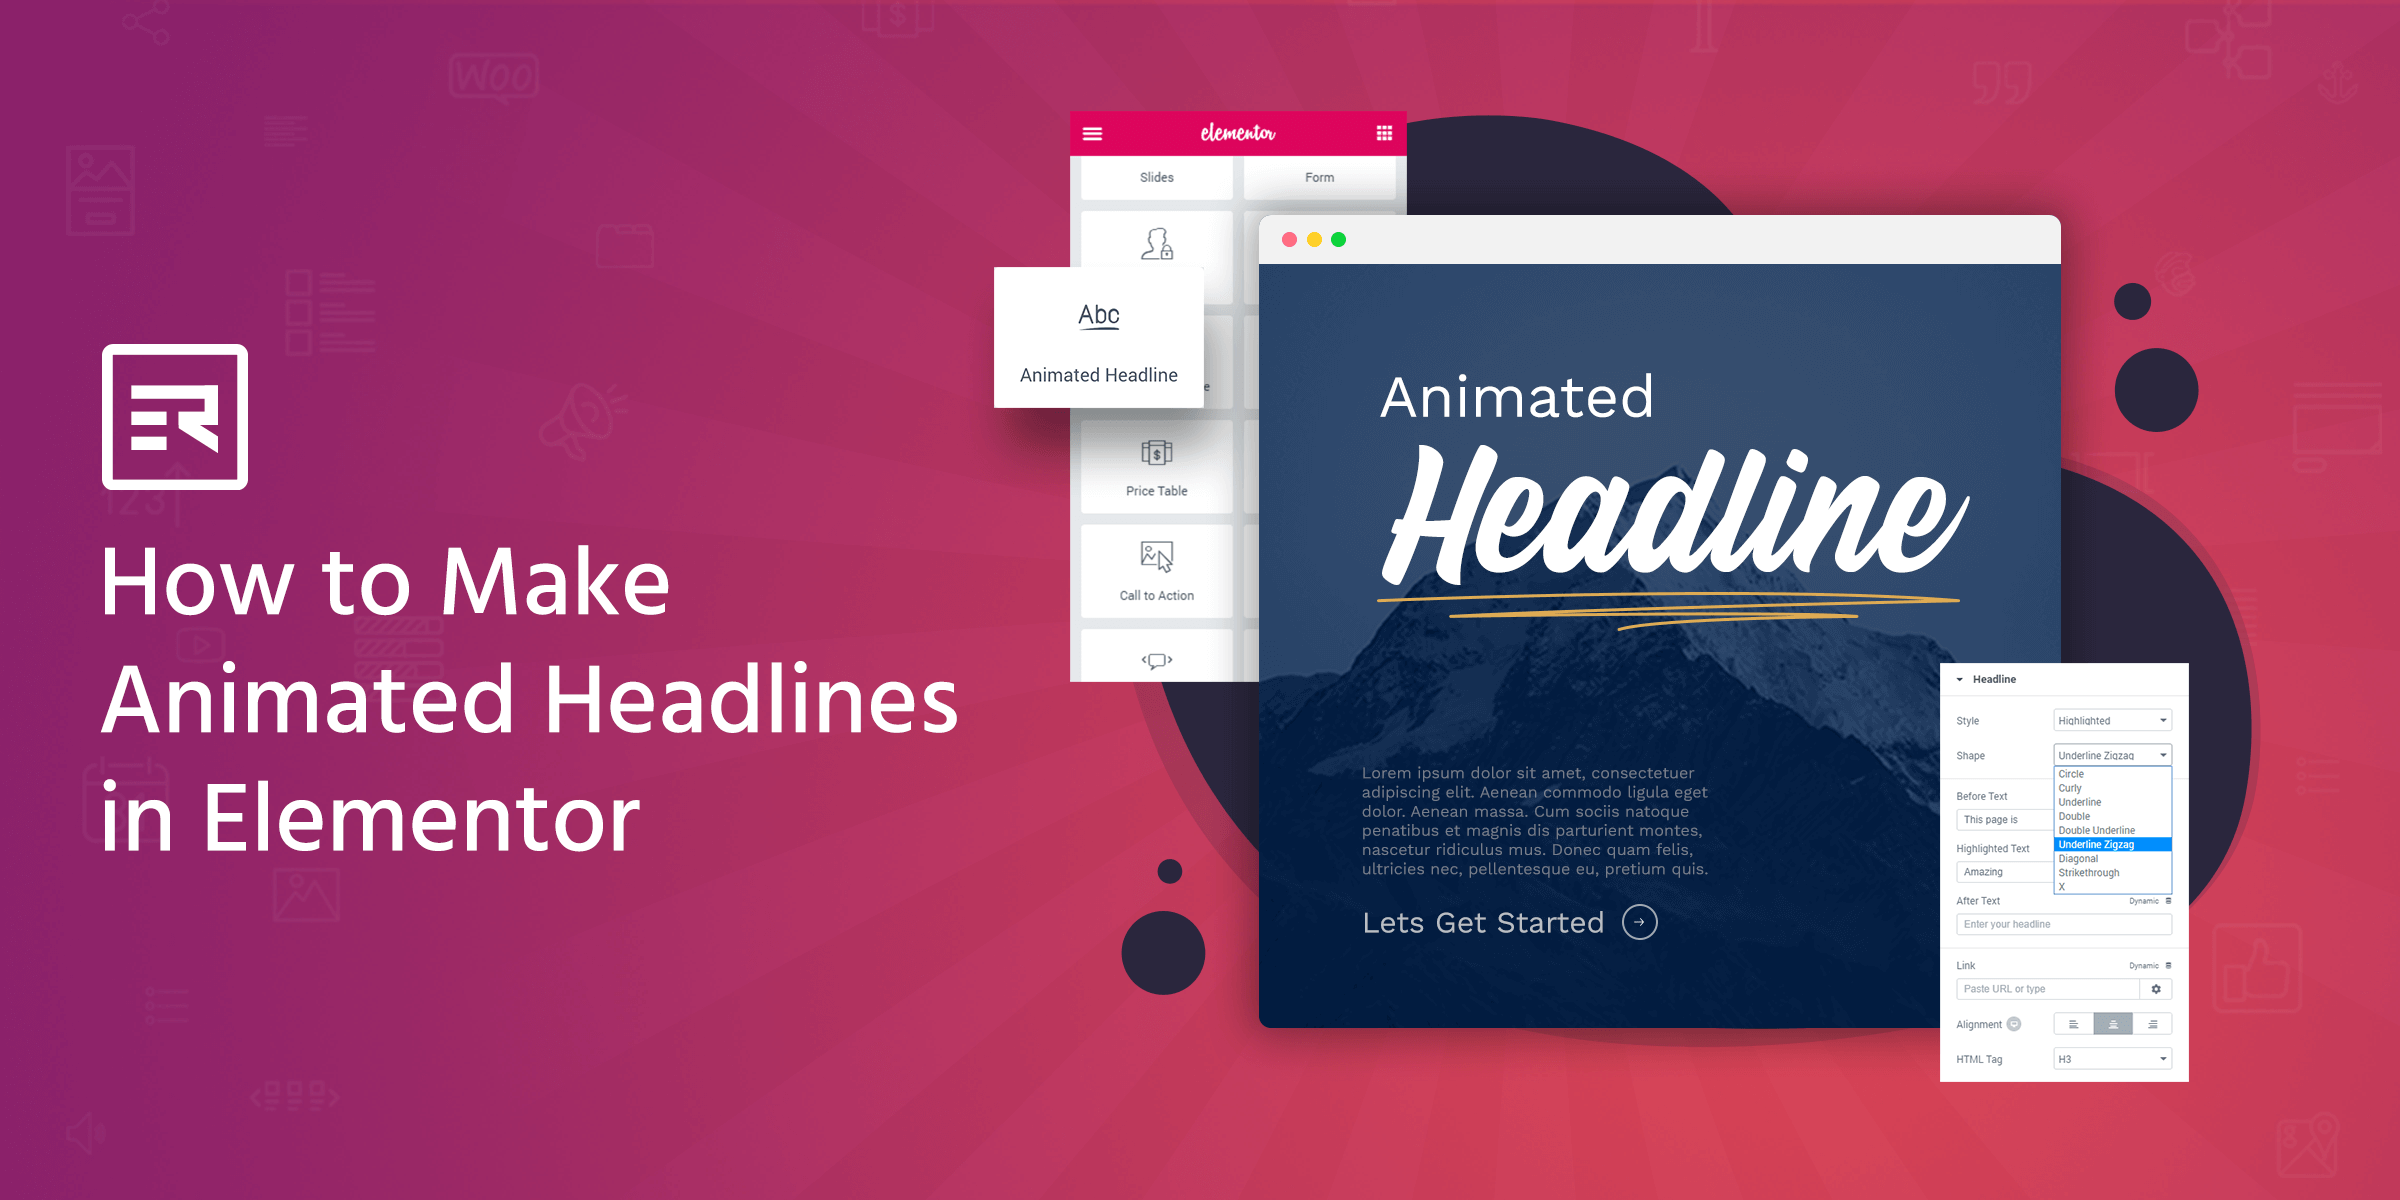 How to Make Animated Headlines in Elementor